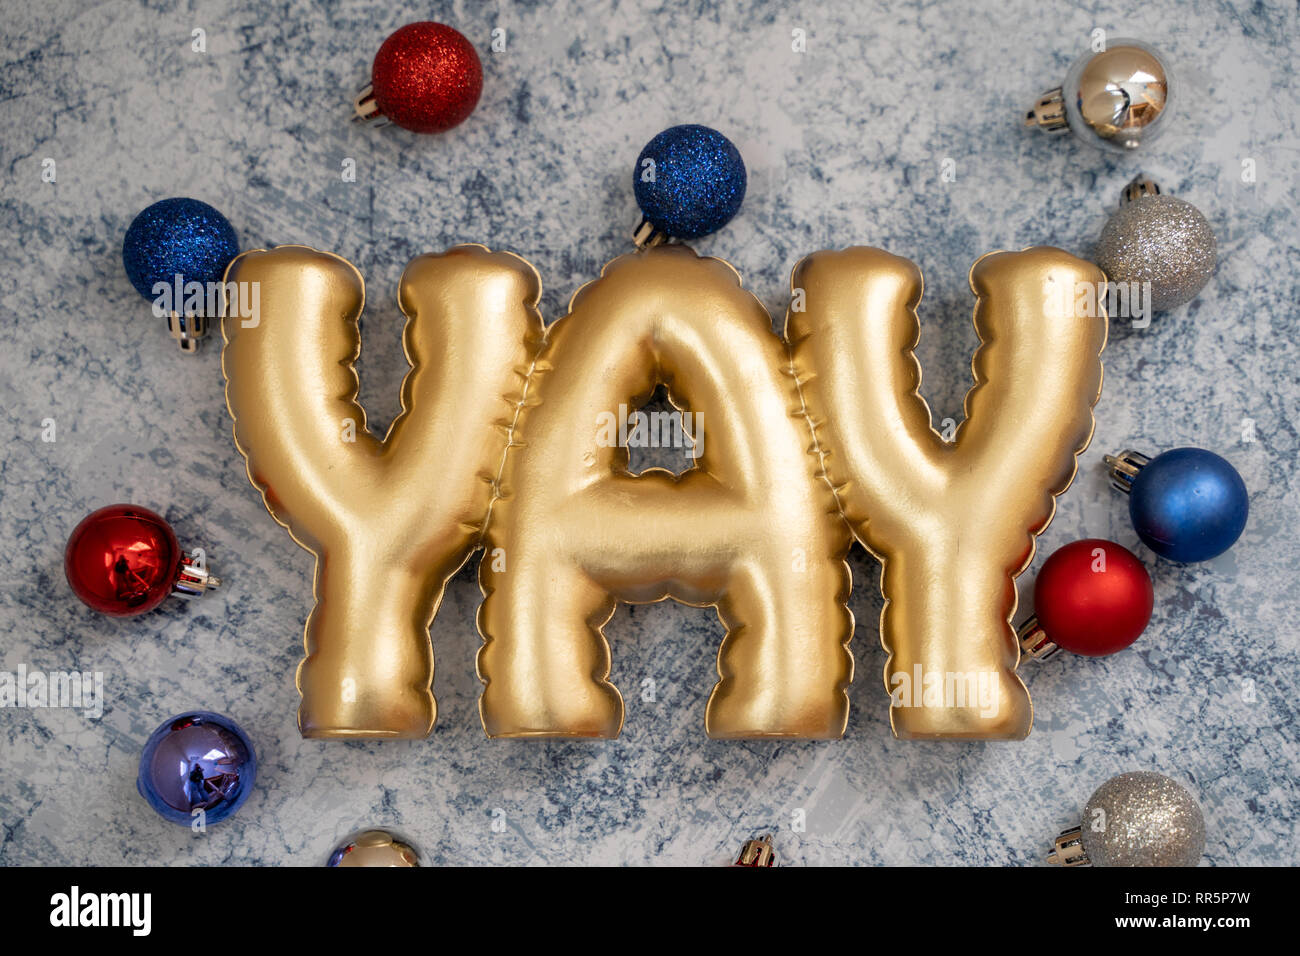 Festive Patriotic Usa American Christmas Background Featuring Ornaments In Red White And Blue Colors On Blue Marble Background Yay Word In Gold Lette Stock Photo Alamy